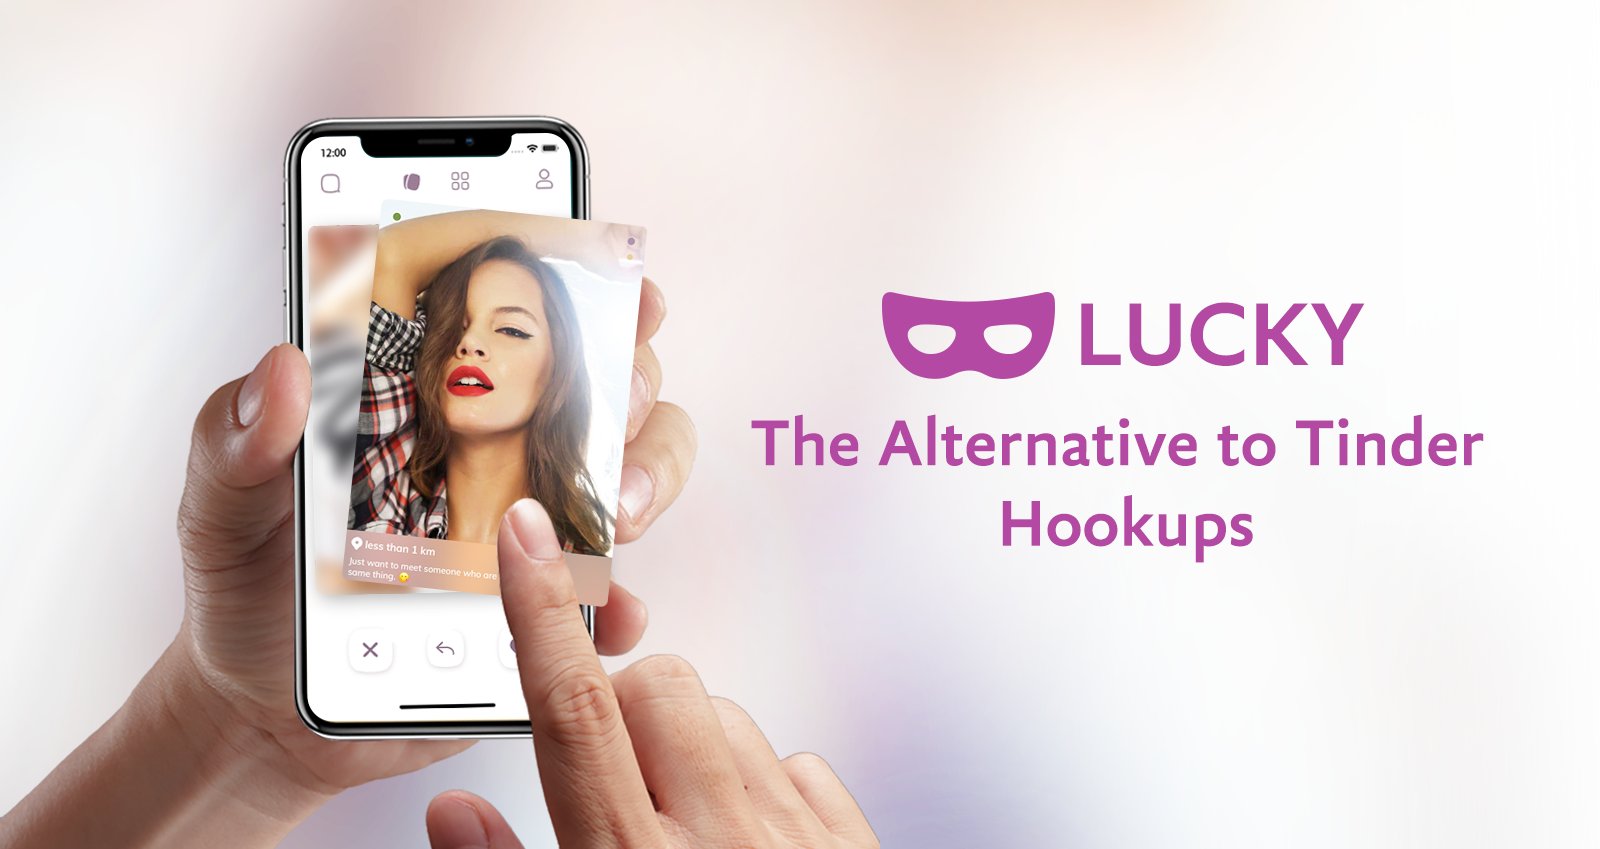 10 Best Dating Apps Like Tinder 2019 (Alternatives for Date or Hookup)